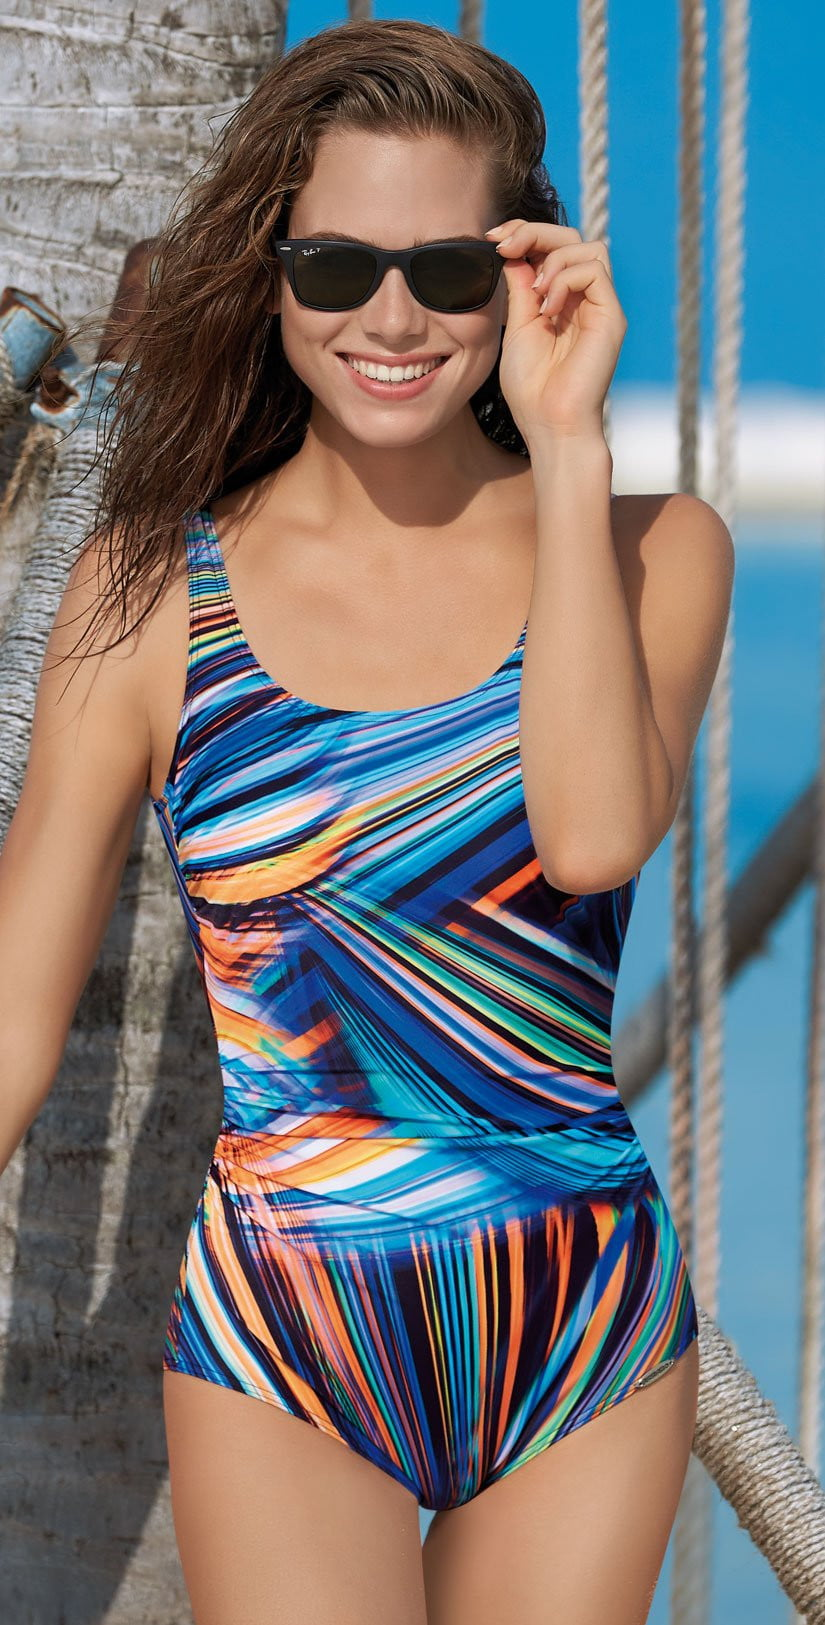 Sunflair Color Composition Mastectomy One Piece Swimsuit 22279 99: